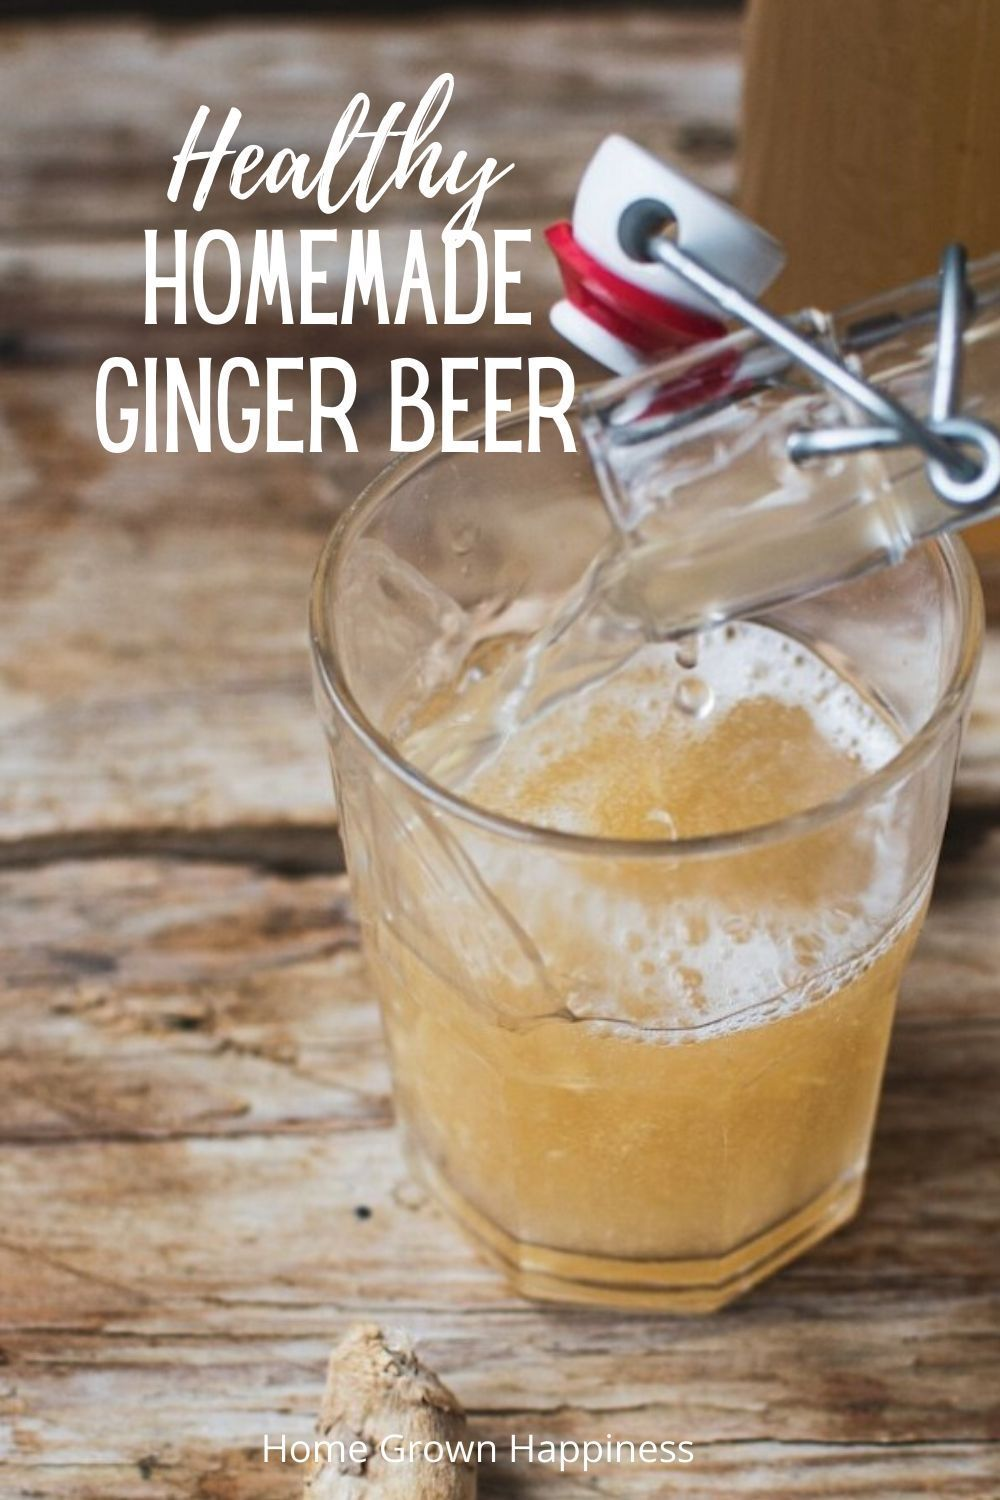 This delicious, healthier homemade ginger beer is perfectly fizzy, has an awesome kick of ginger and packed with probiotics.